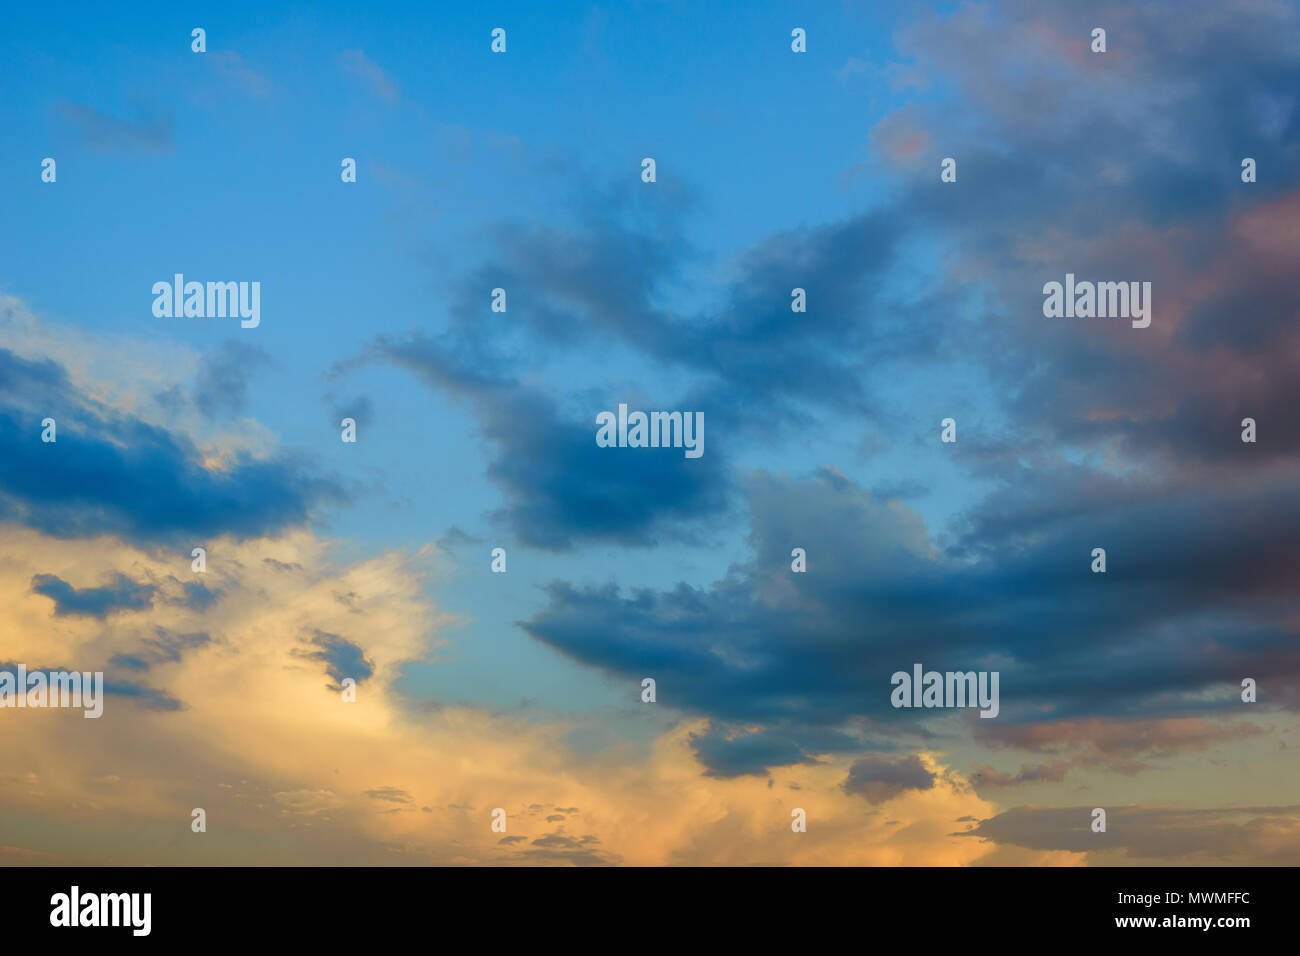 sunset sky with colorful clouds - Stock Image